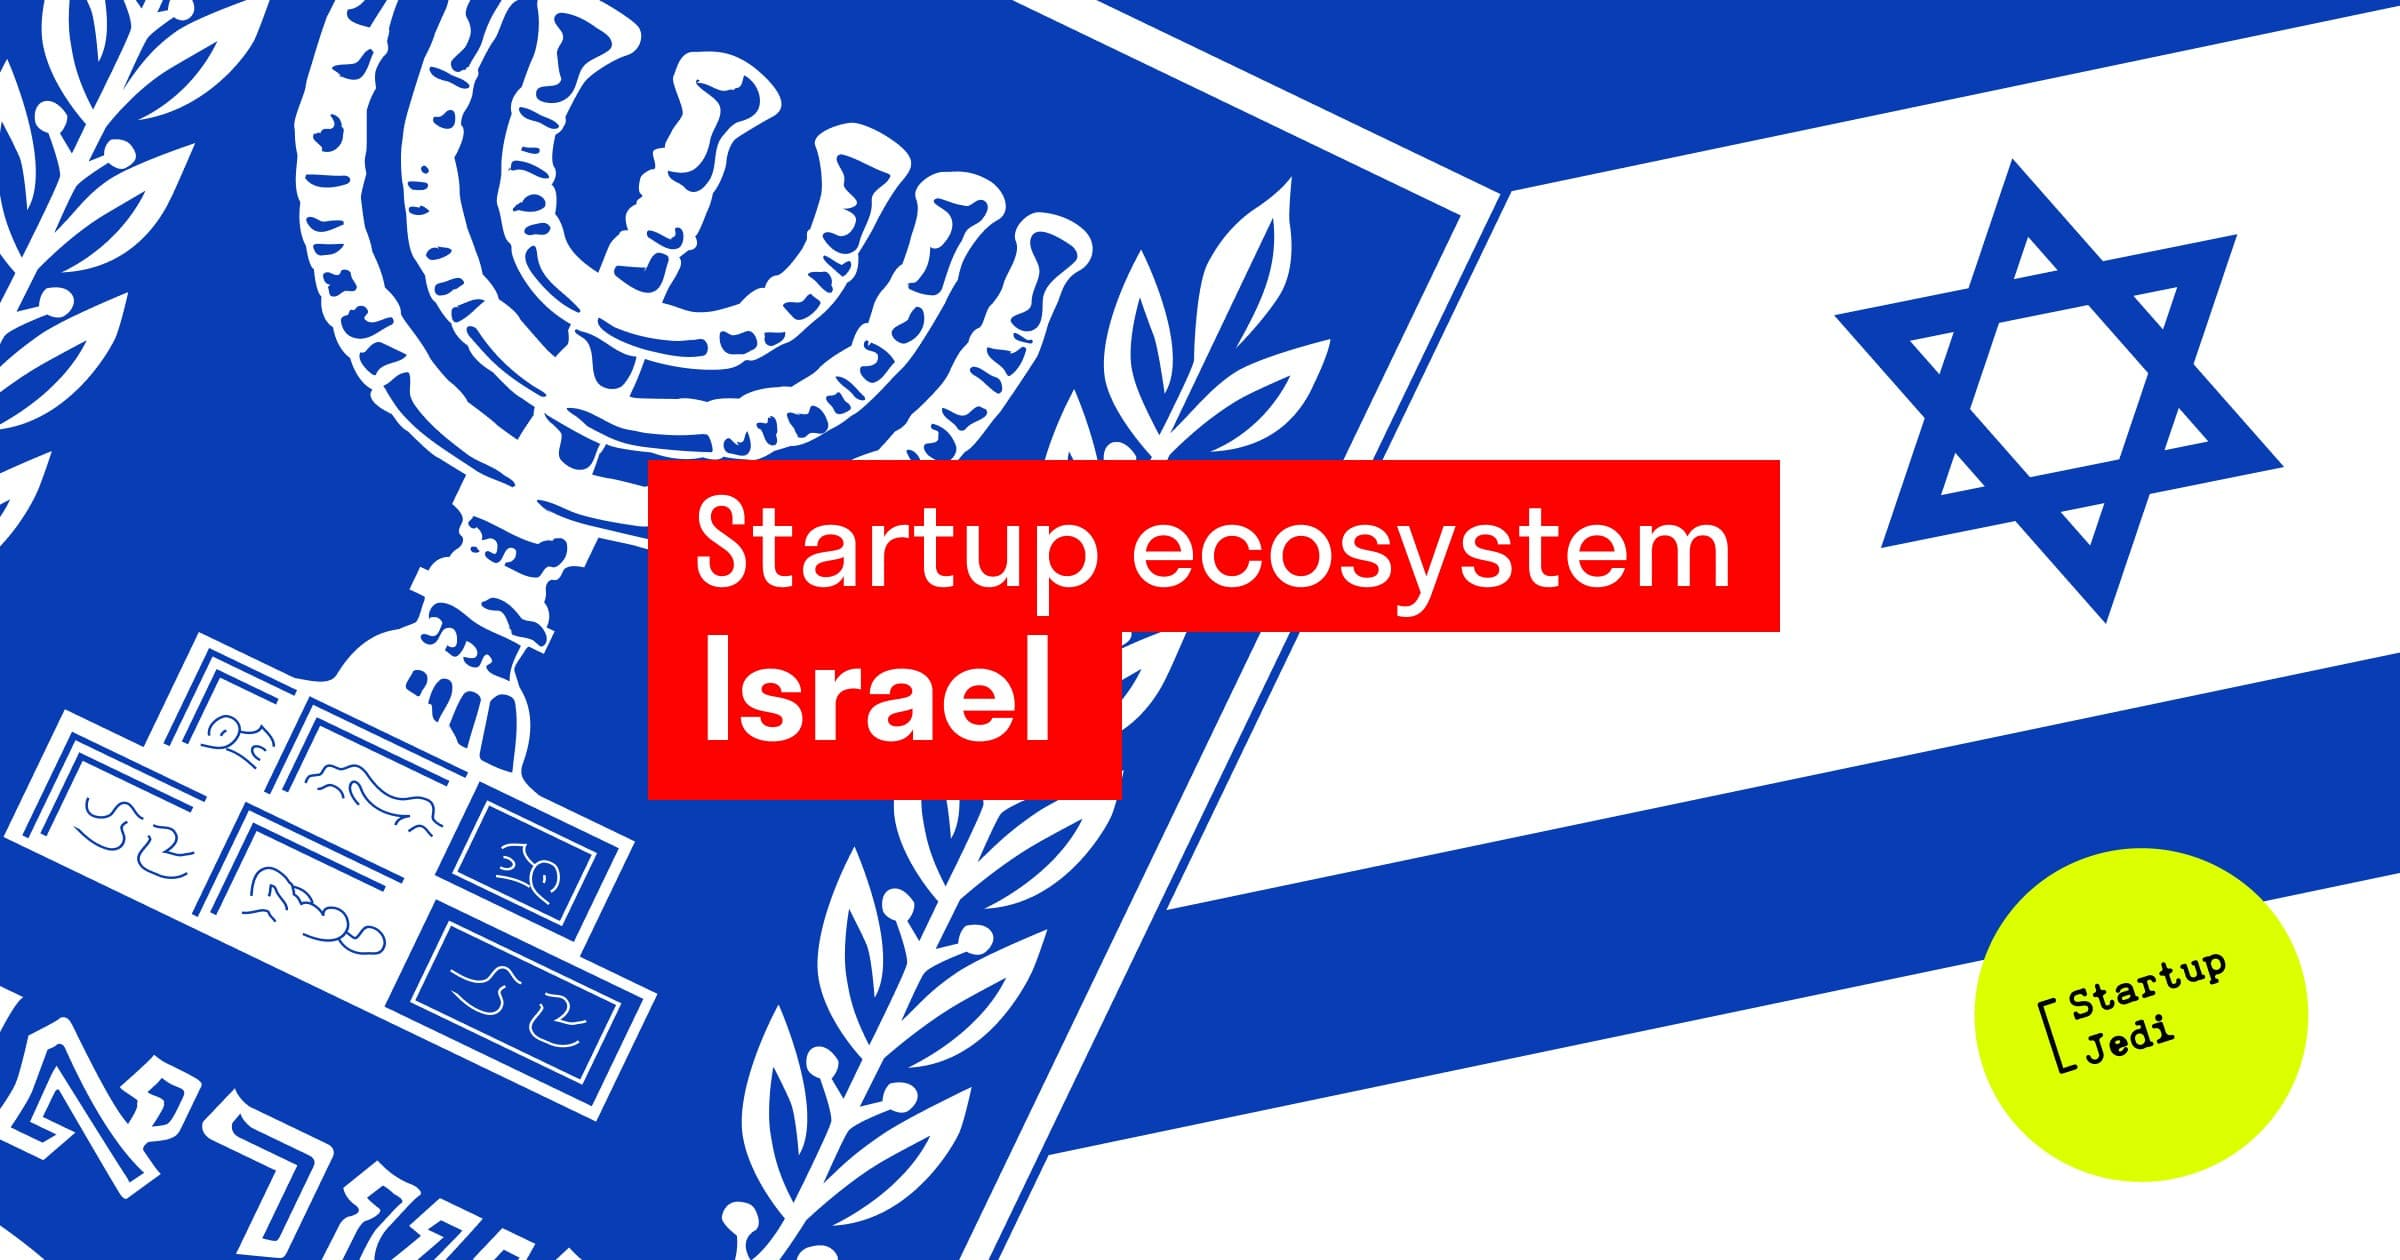 The startup ecosystem of Israel